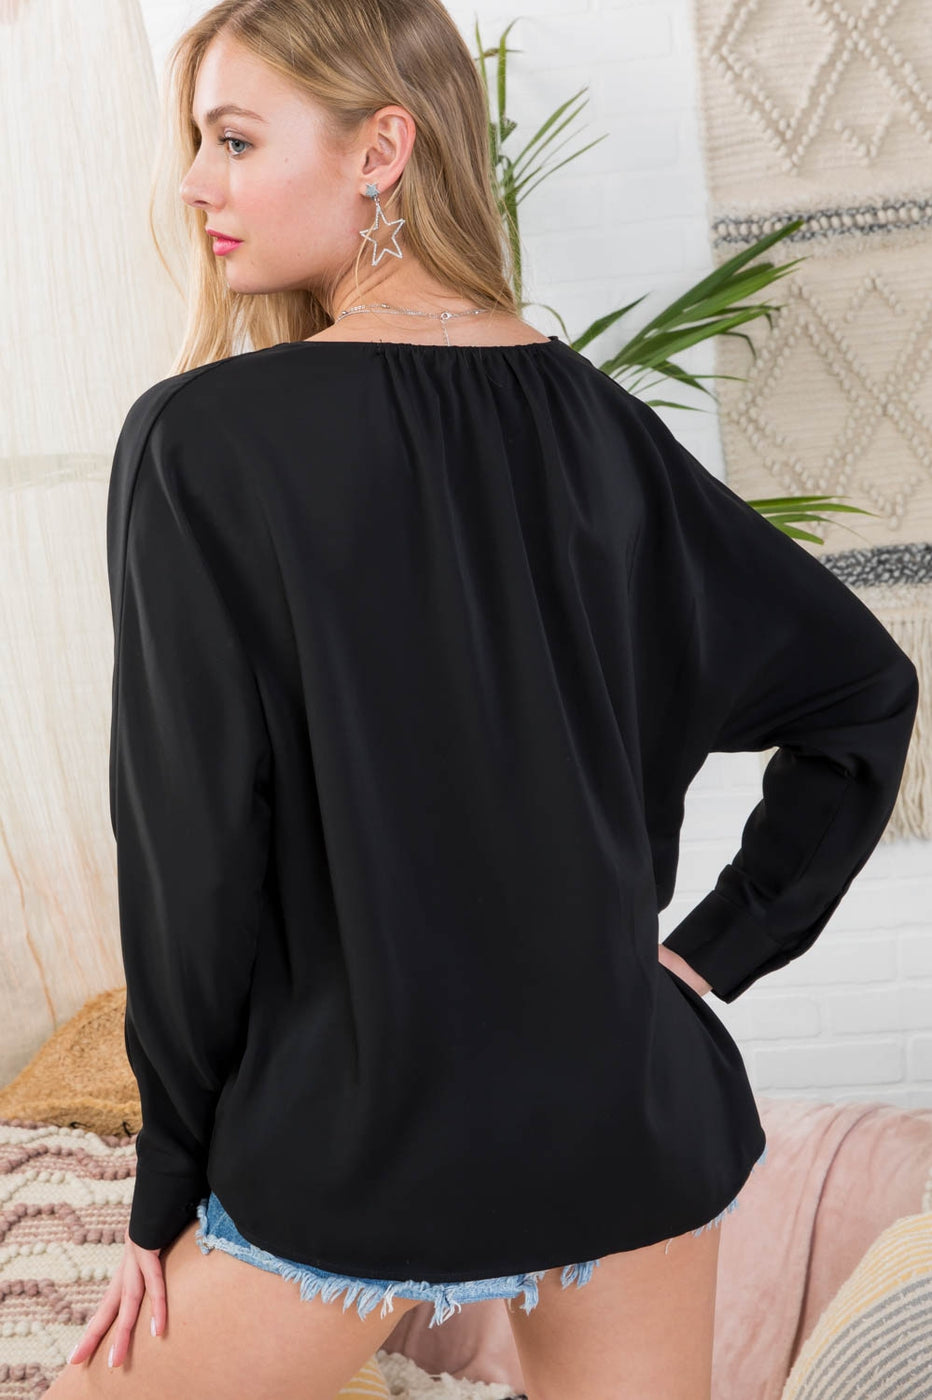 Black Top With V-Neck Front Overlap with Front Button Siin Bees